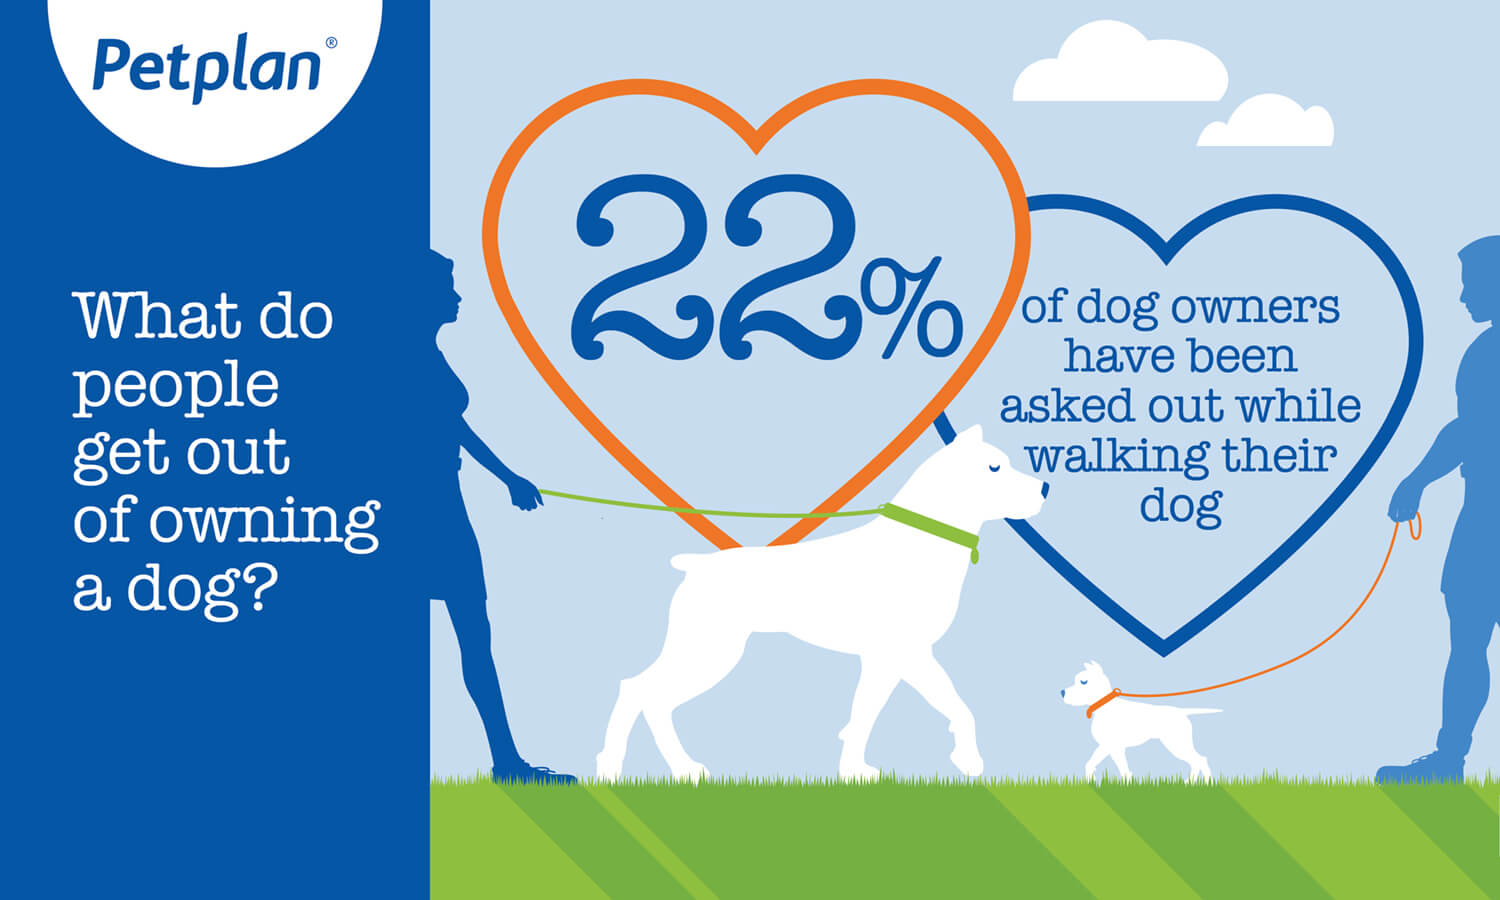 Infographic: 22% of dog owners have been asked out while walking their dog img